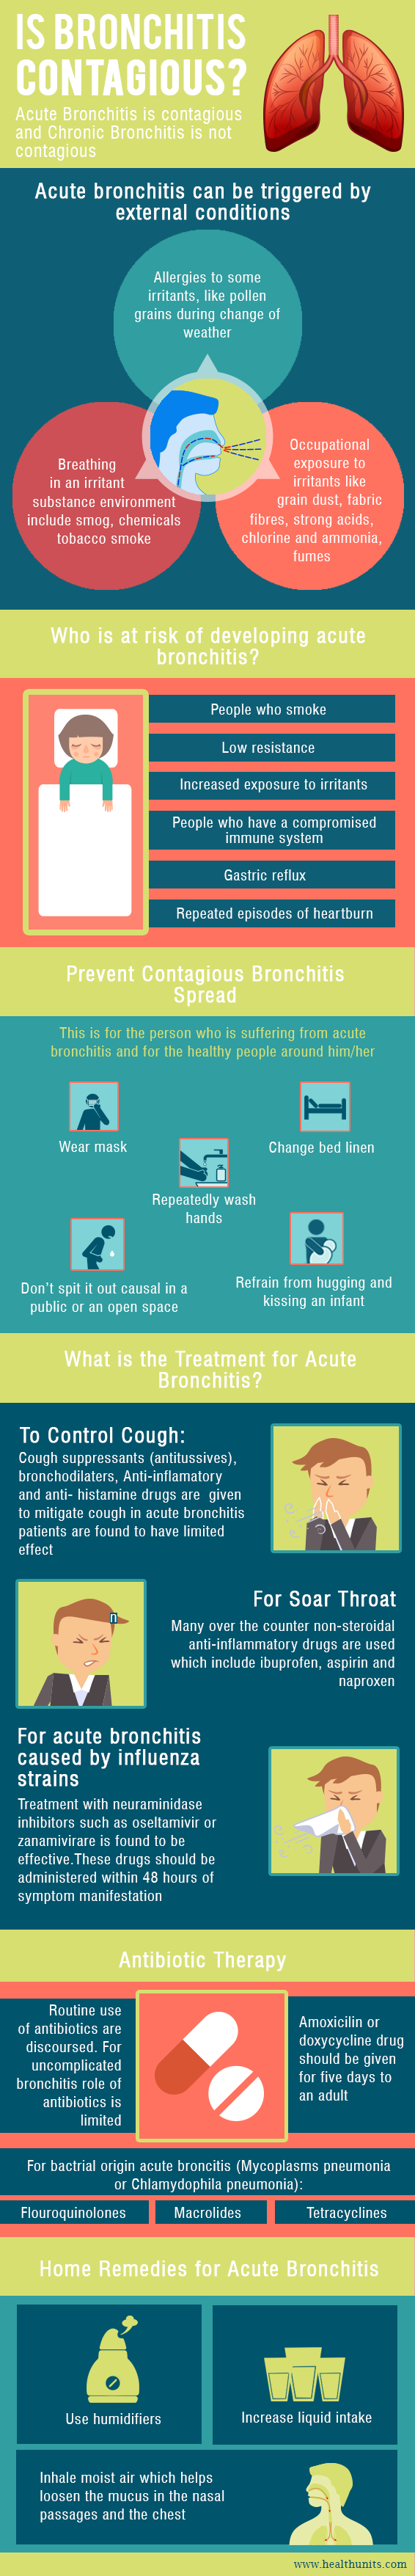 is bronchitis contagious